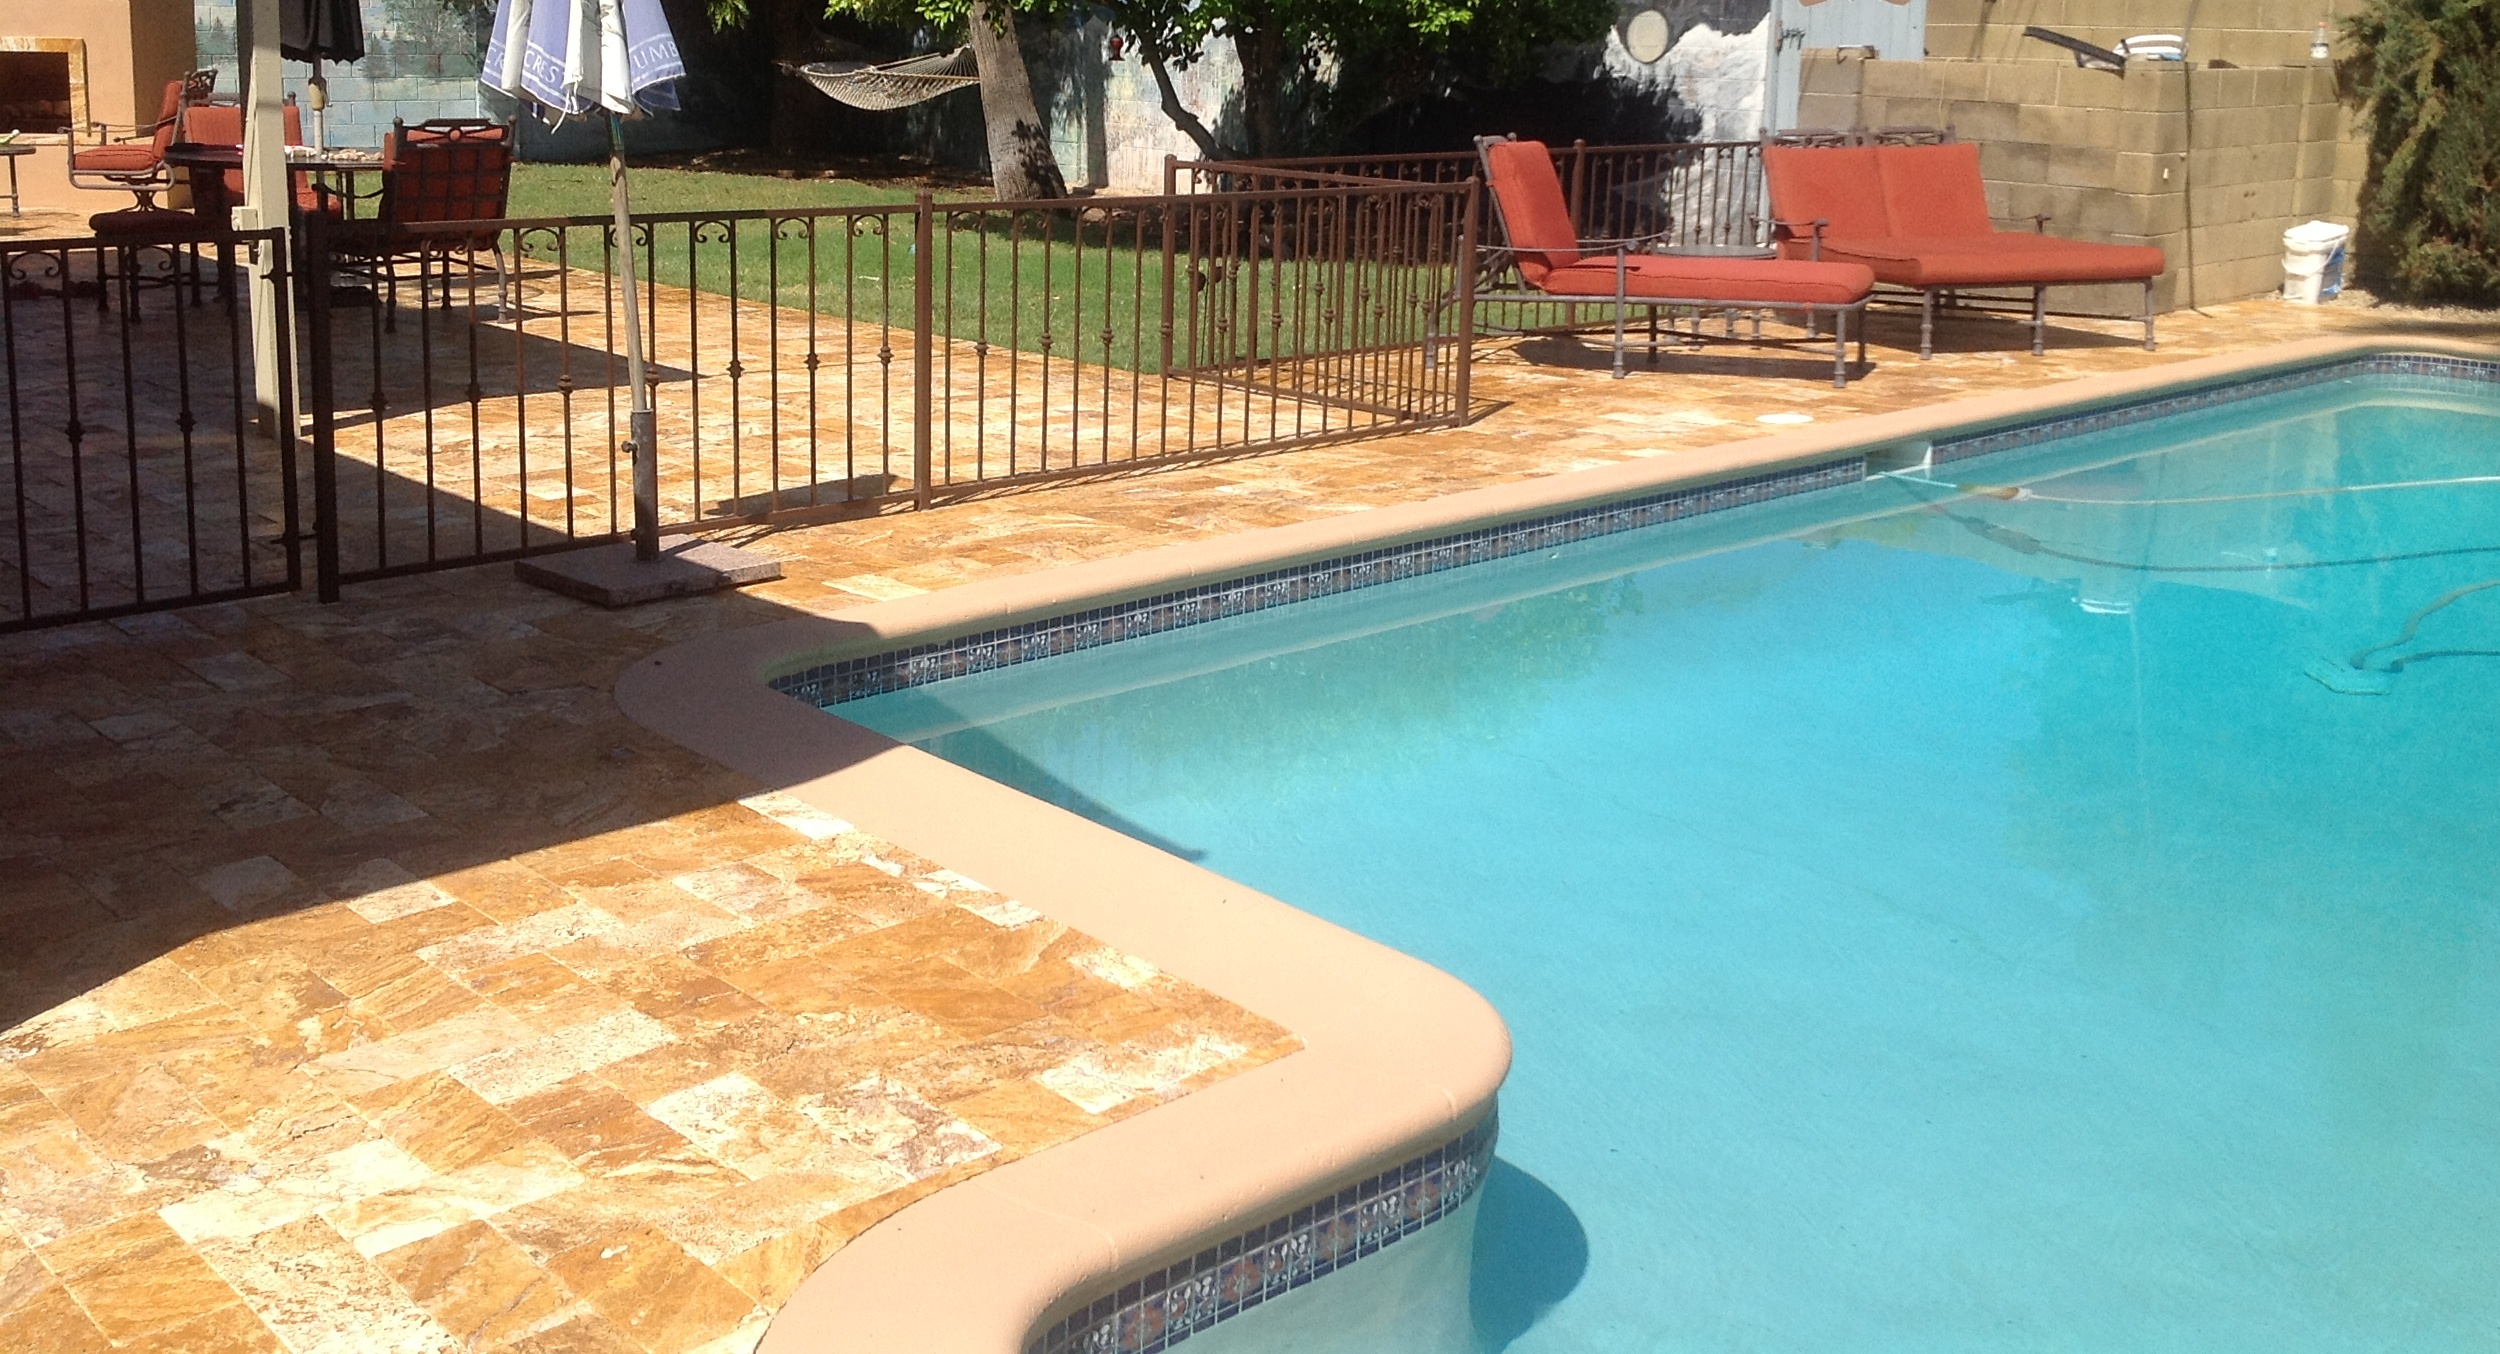 A dramatic change took place with this Scottsdale pool remodeling. We removed old, cracked and unsightly looking Kool Deck and replaced it with gorgeous travertine pool deck. Scottsdale clients are tickled with their new yard.